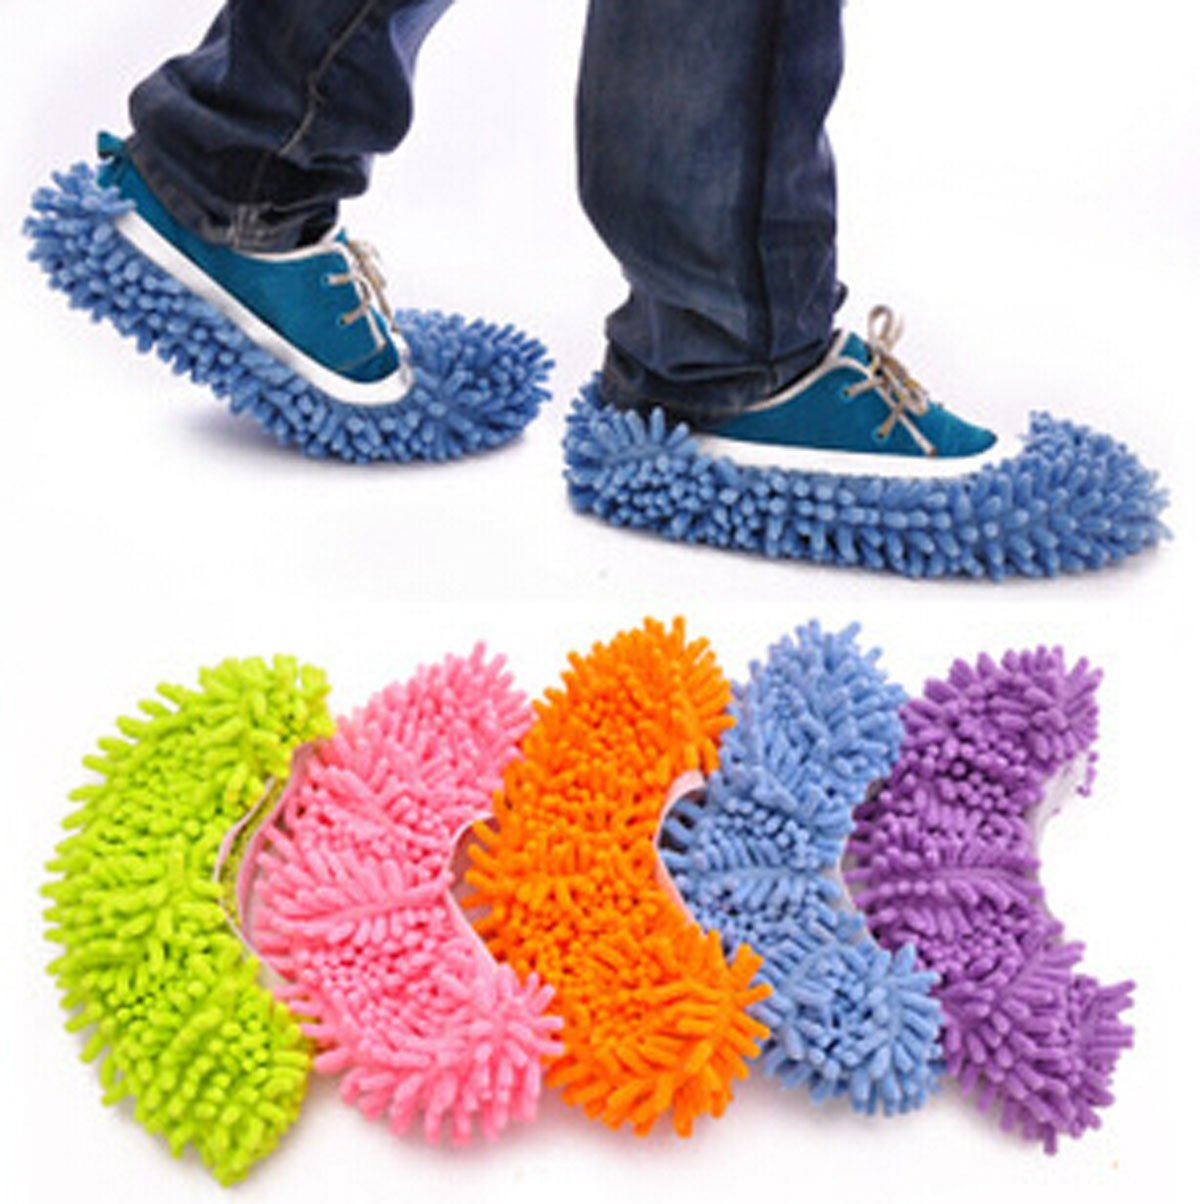 shoe covers that will clean your floors